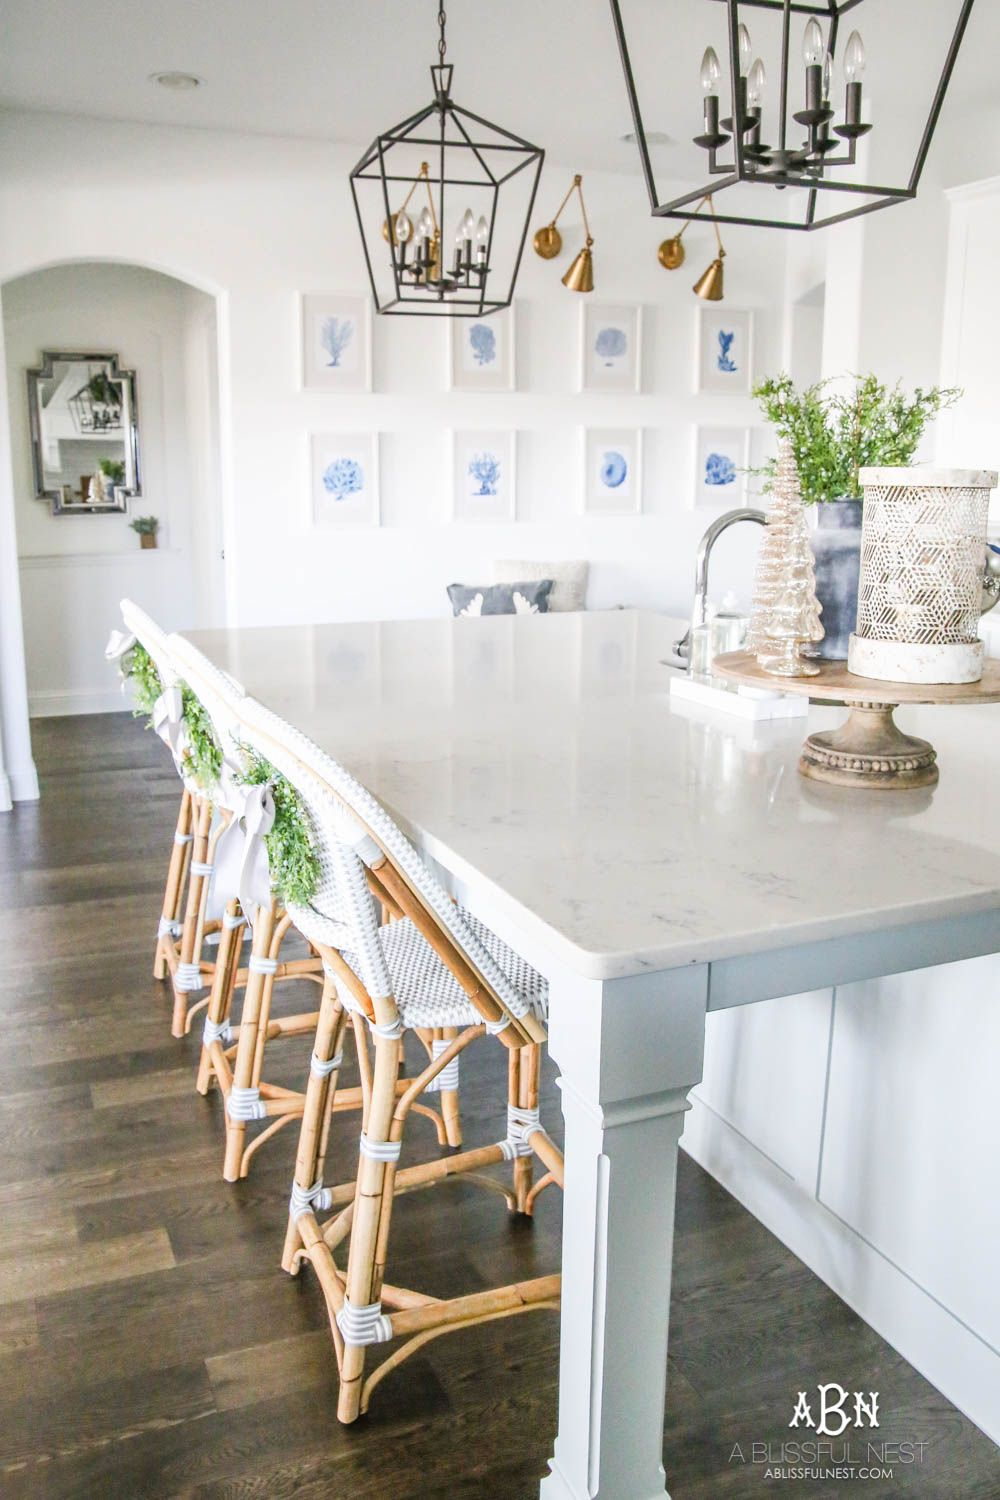 Best Blue And Silver Christmas Kitchen Home Tour Christmas 400 x 300